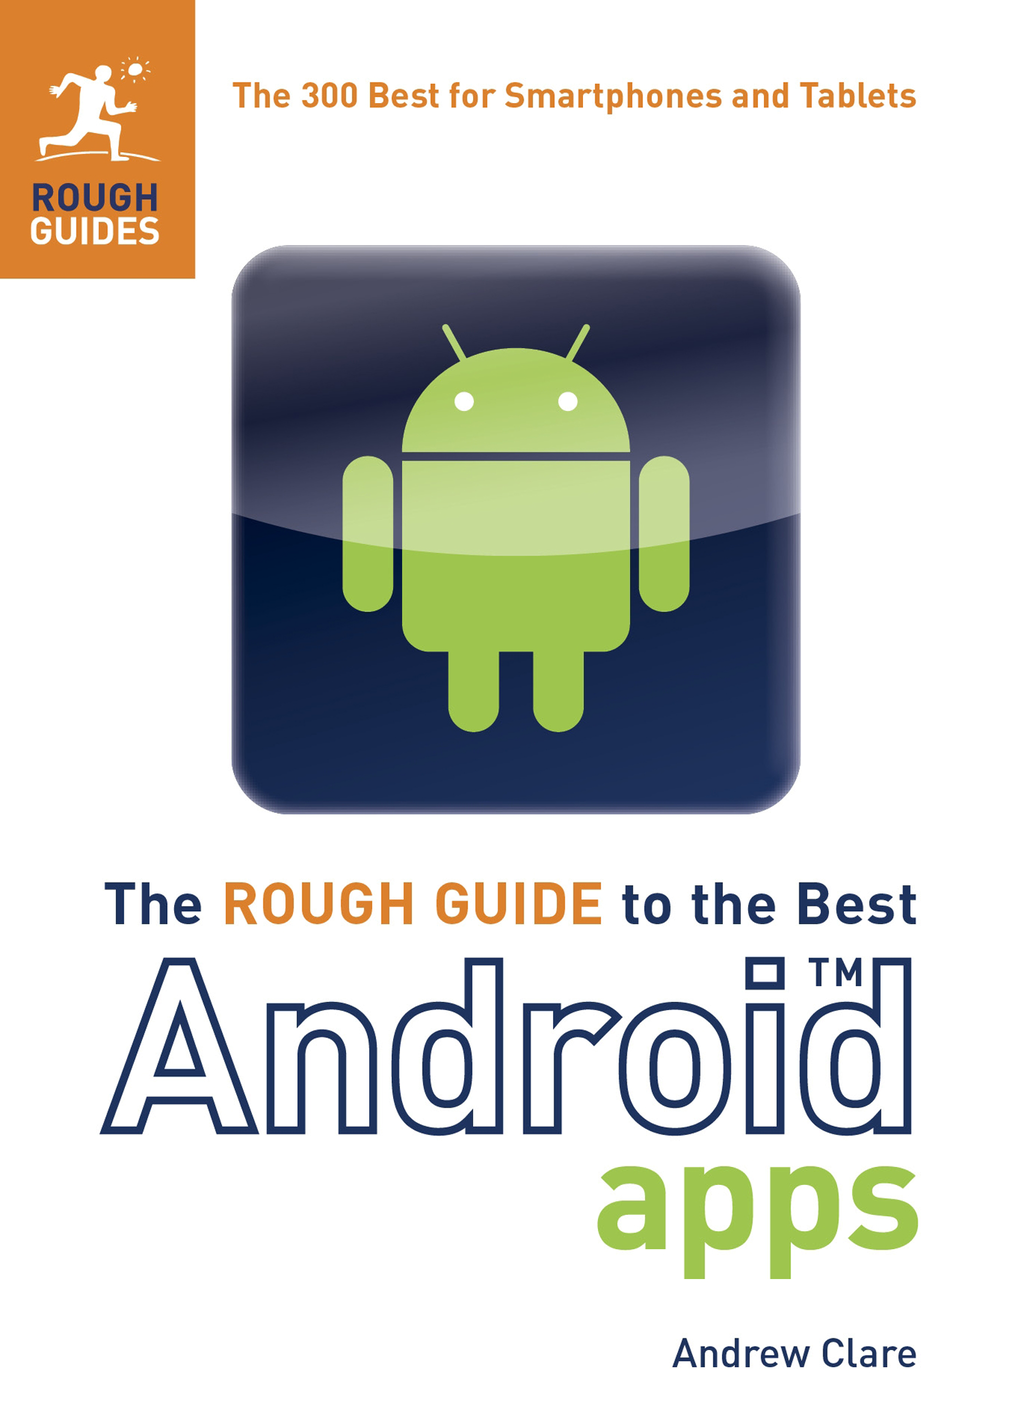 The Rough Guide to the Best Android Apps: The 400 Best for Smartphones and Tablets By: Andrew Clare